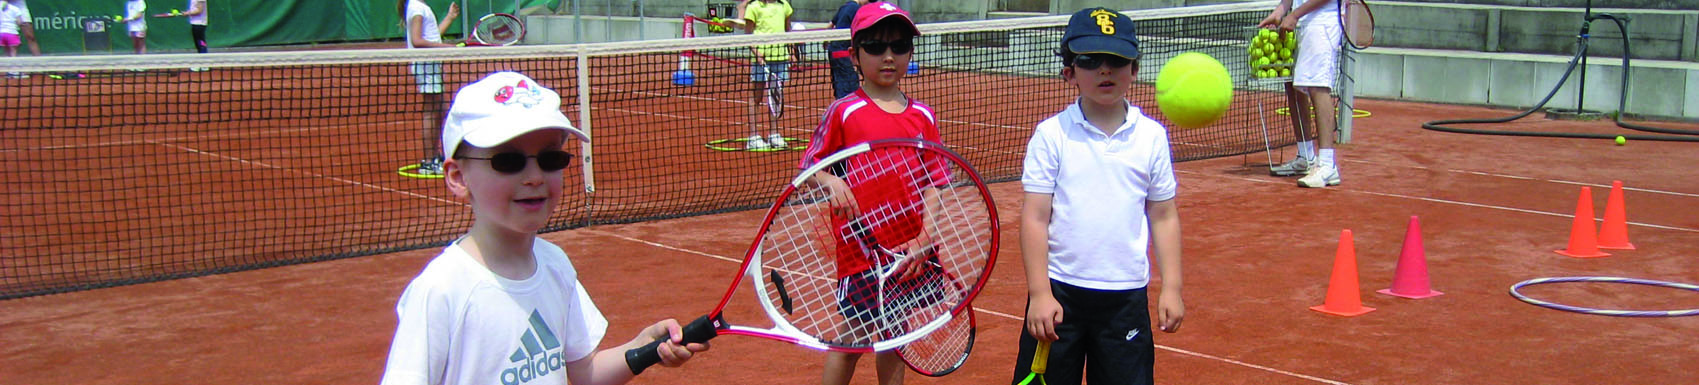 /public/images/photos/mini_tennis.jpg